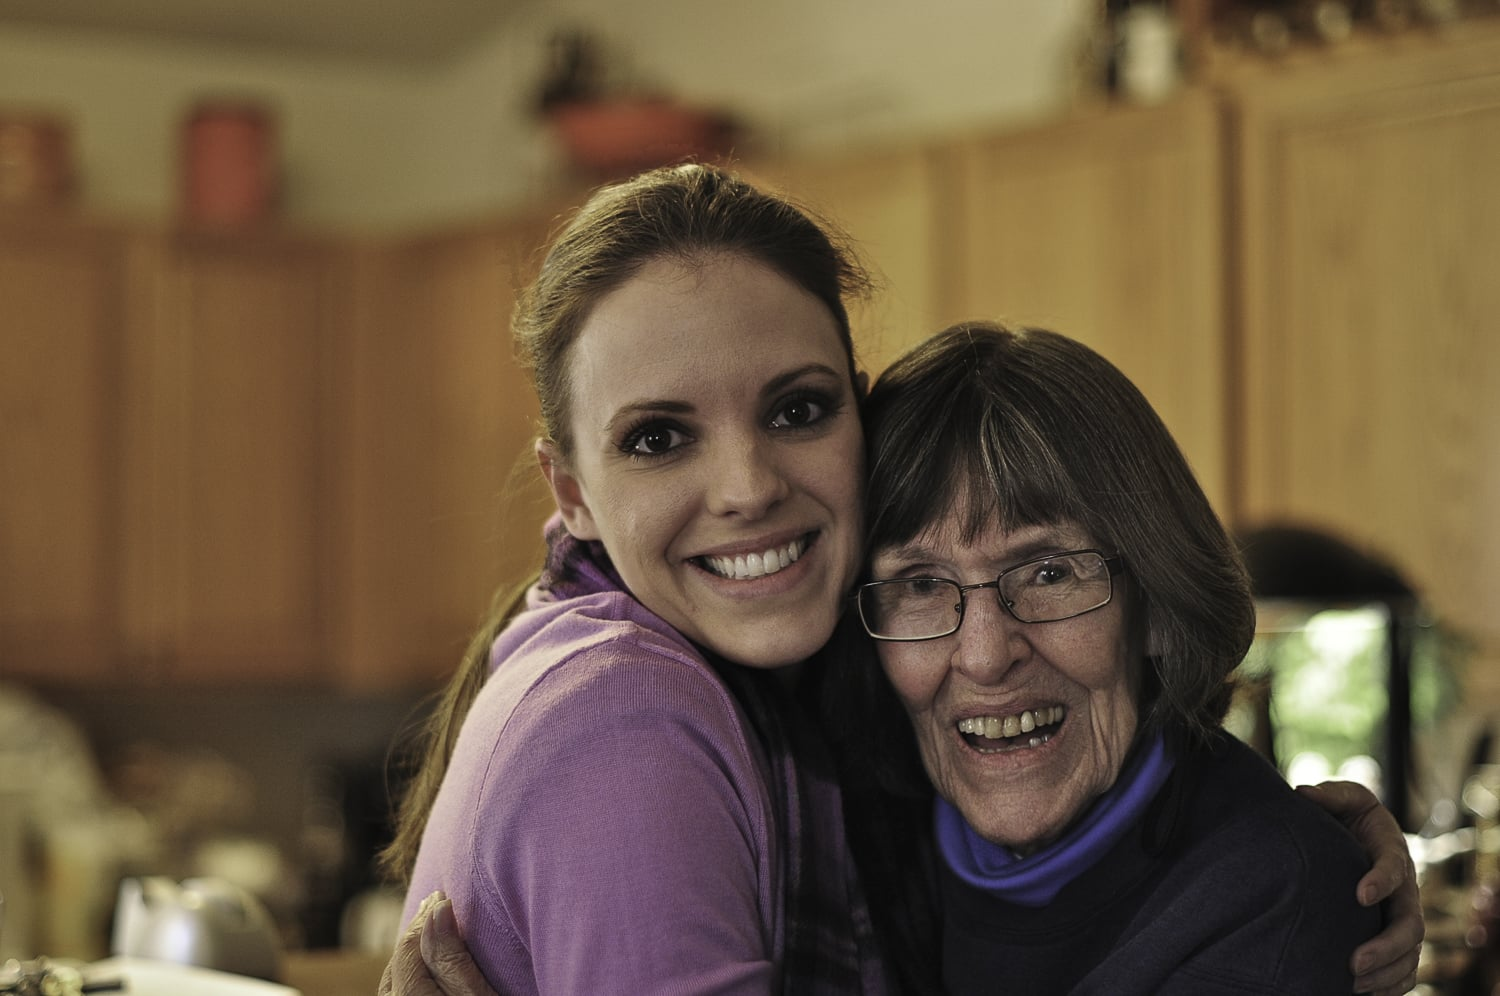 Mom with my daughter Erica. They were very close. Mom shared her interests in gardening and cooking with my other daughter, Brynn, with frequent exchanges of photos and text messages.